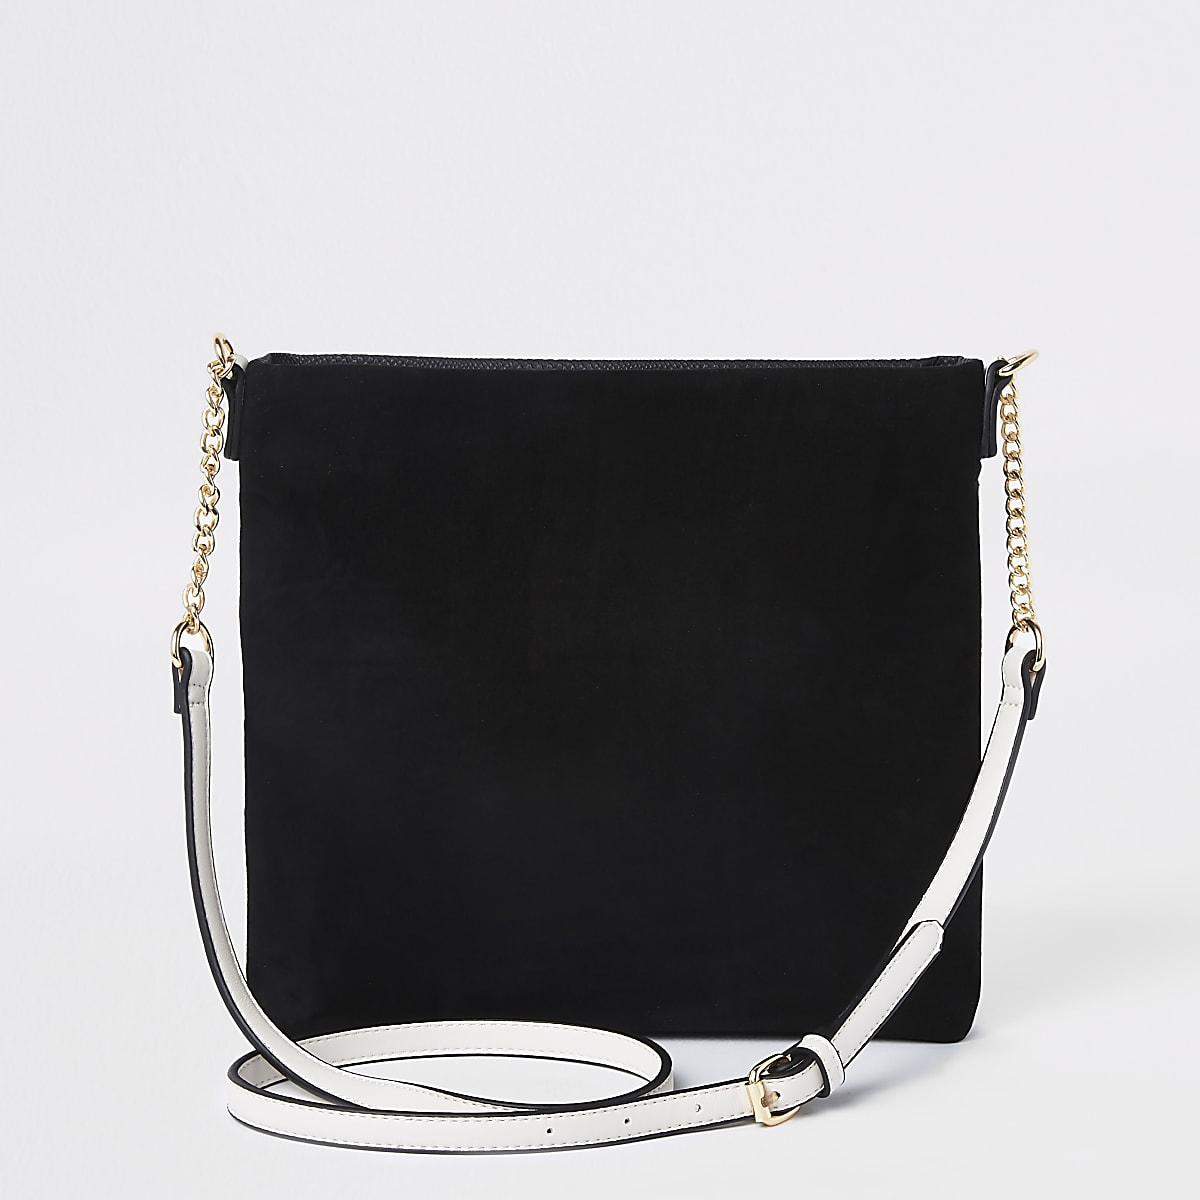 8cea3e39ffd Black zip front chain cross body bag - Cross Body Bags - Bags ...